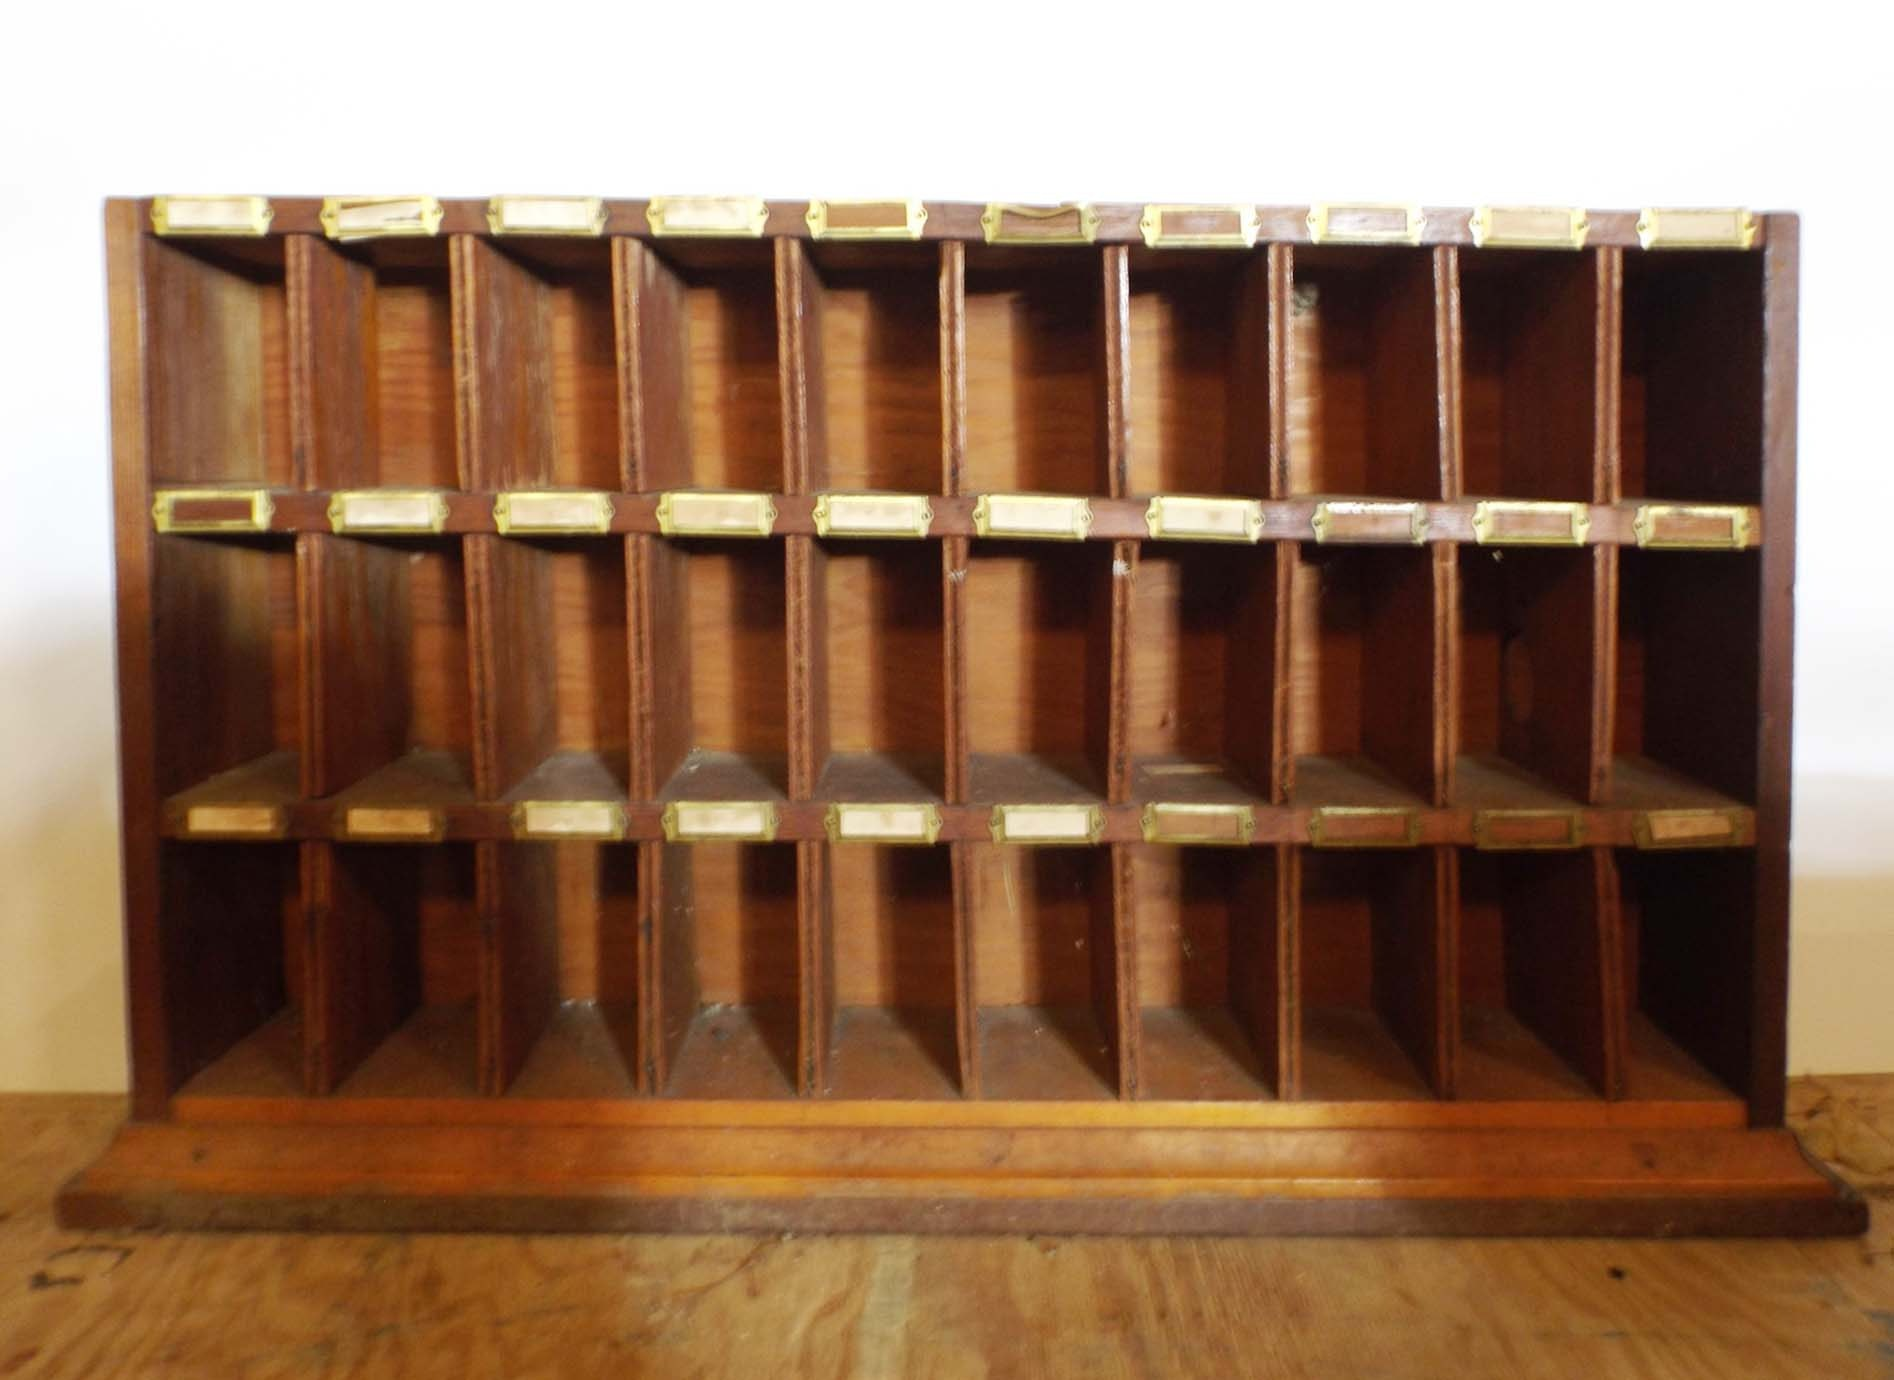 Vintage Wooden Post Office Mail Sorter Cabinet ...